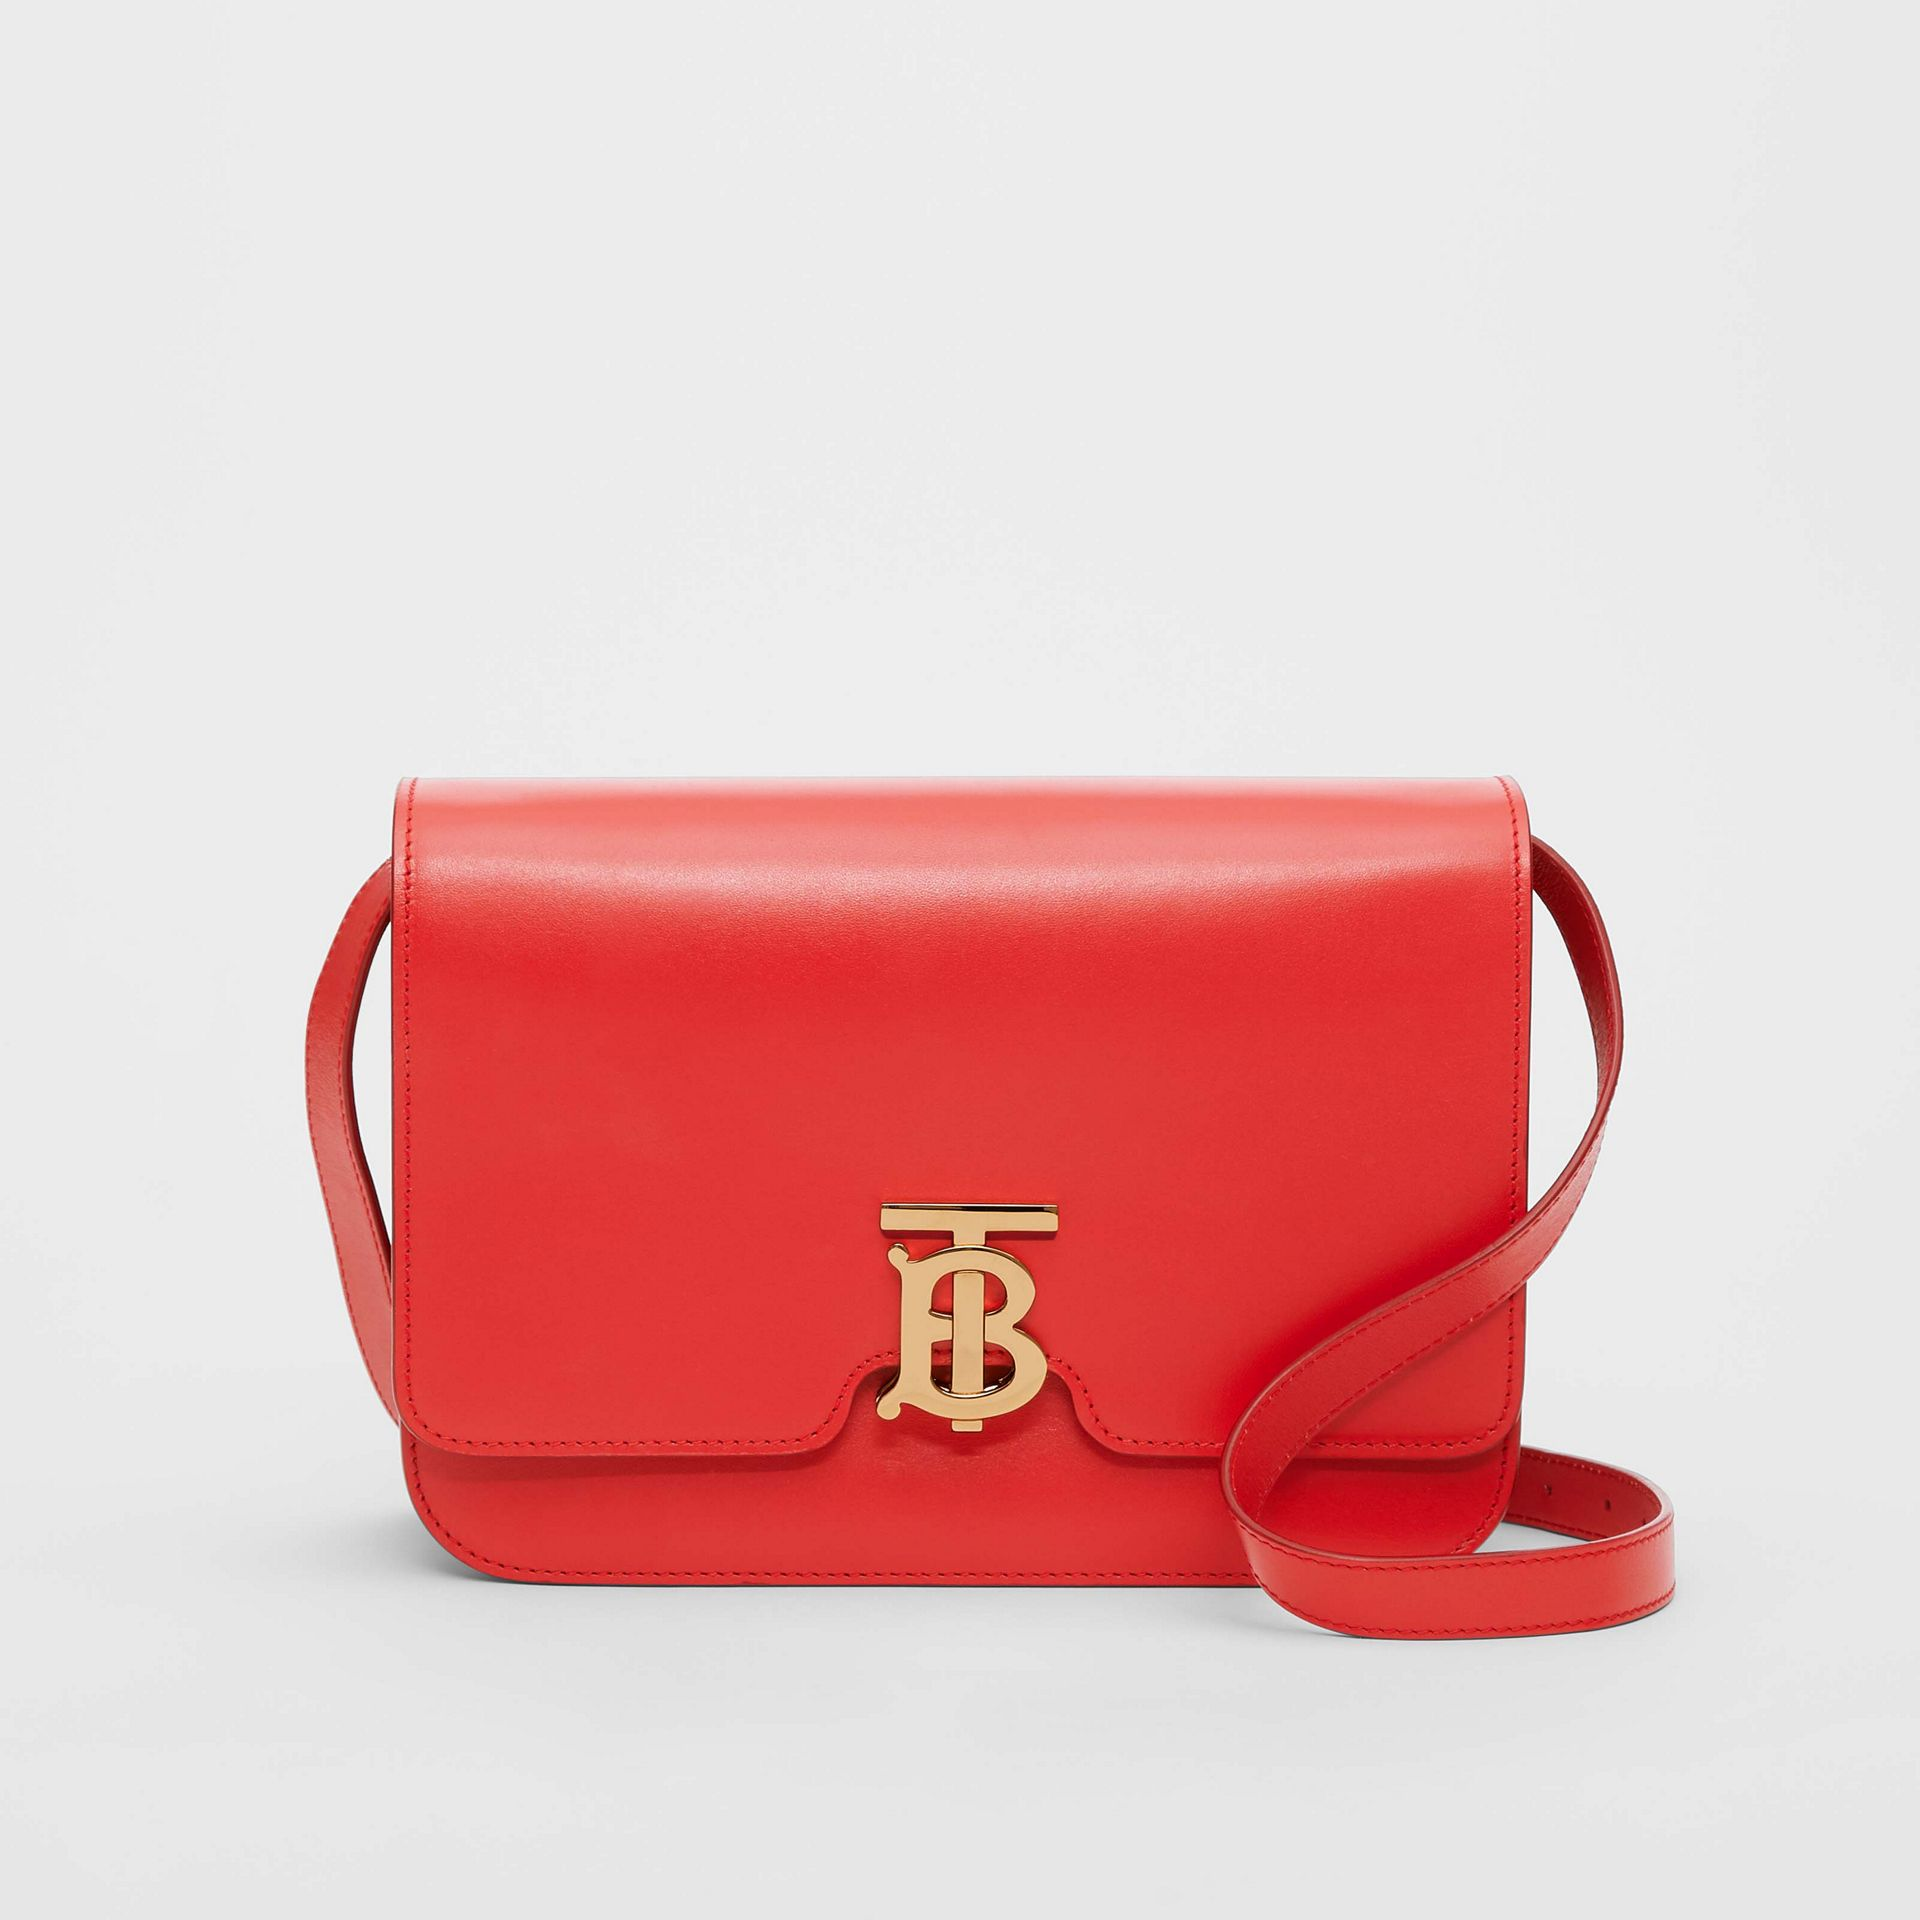 Medium Leather TB Bag in Bright Red - Women | Burberry United States - gallery image 0